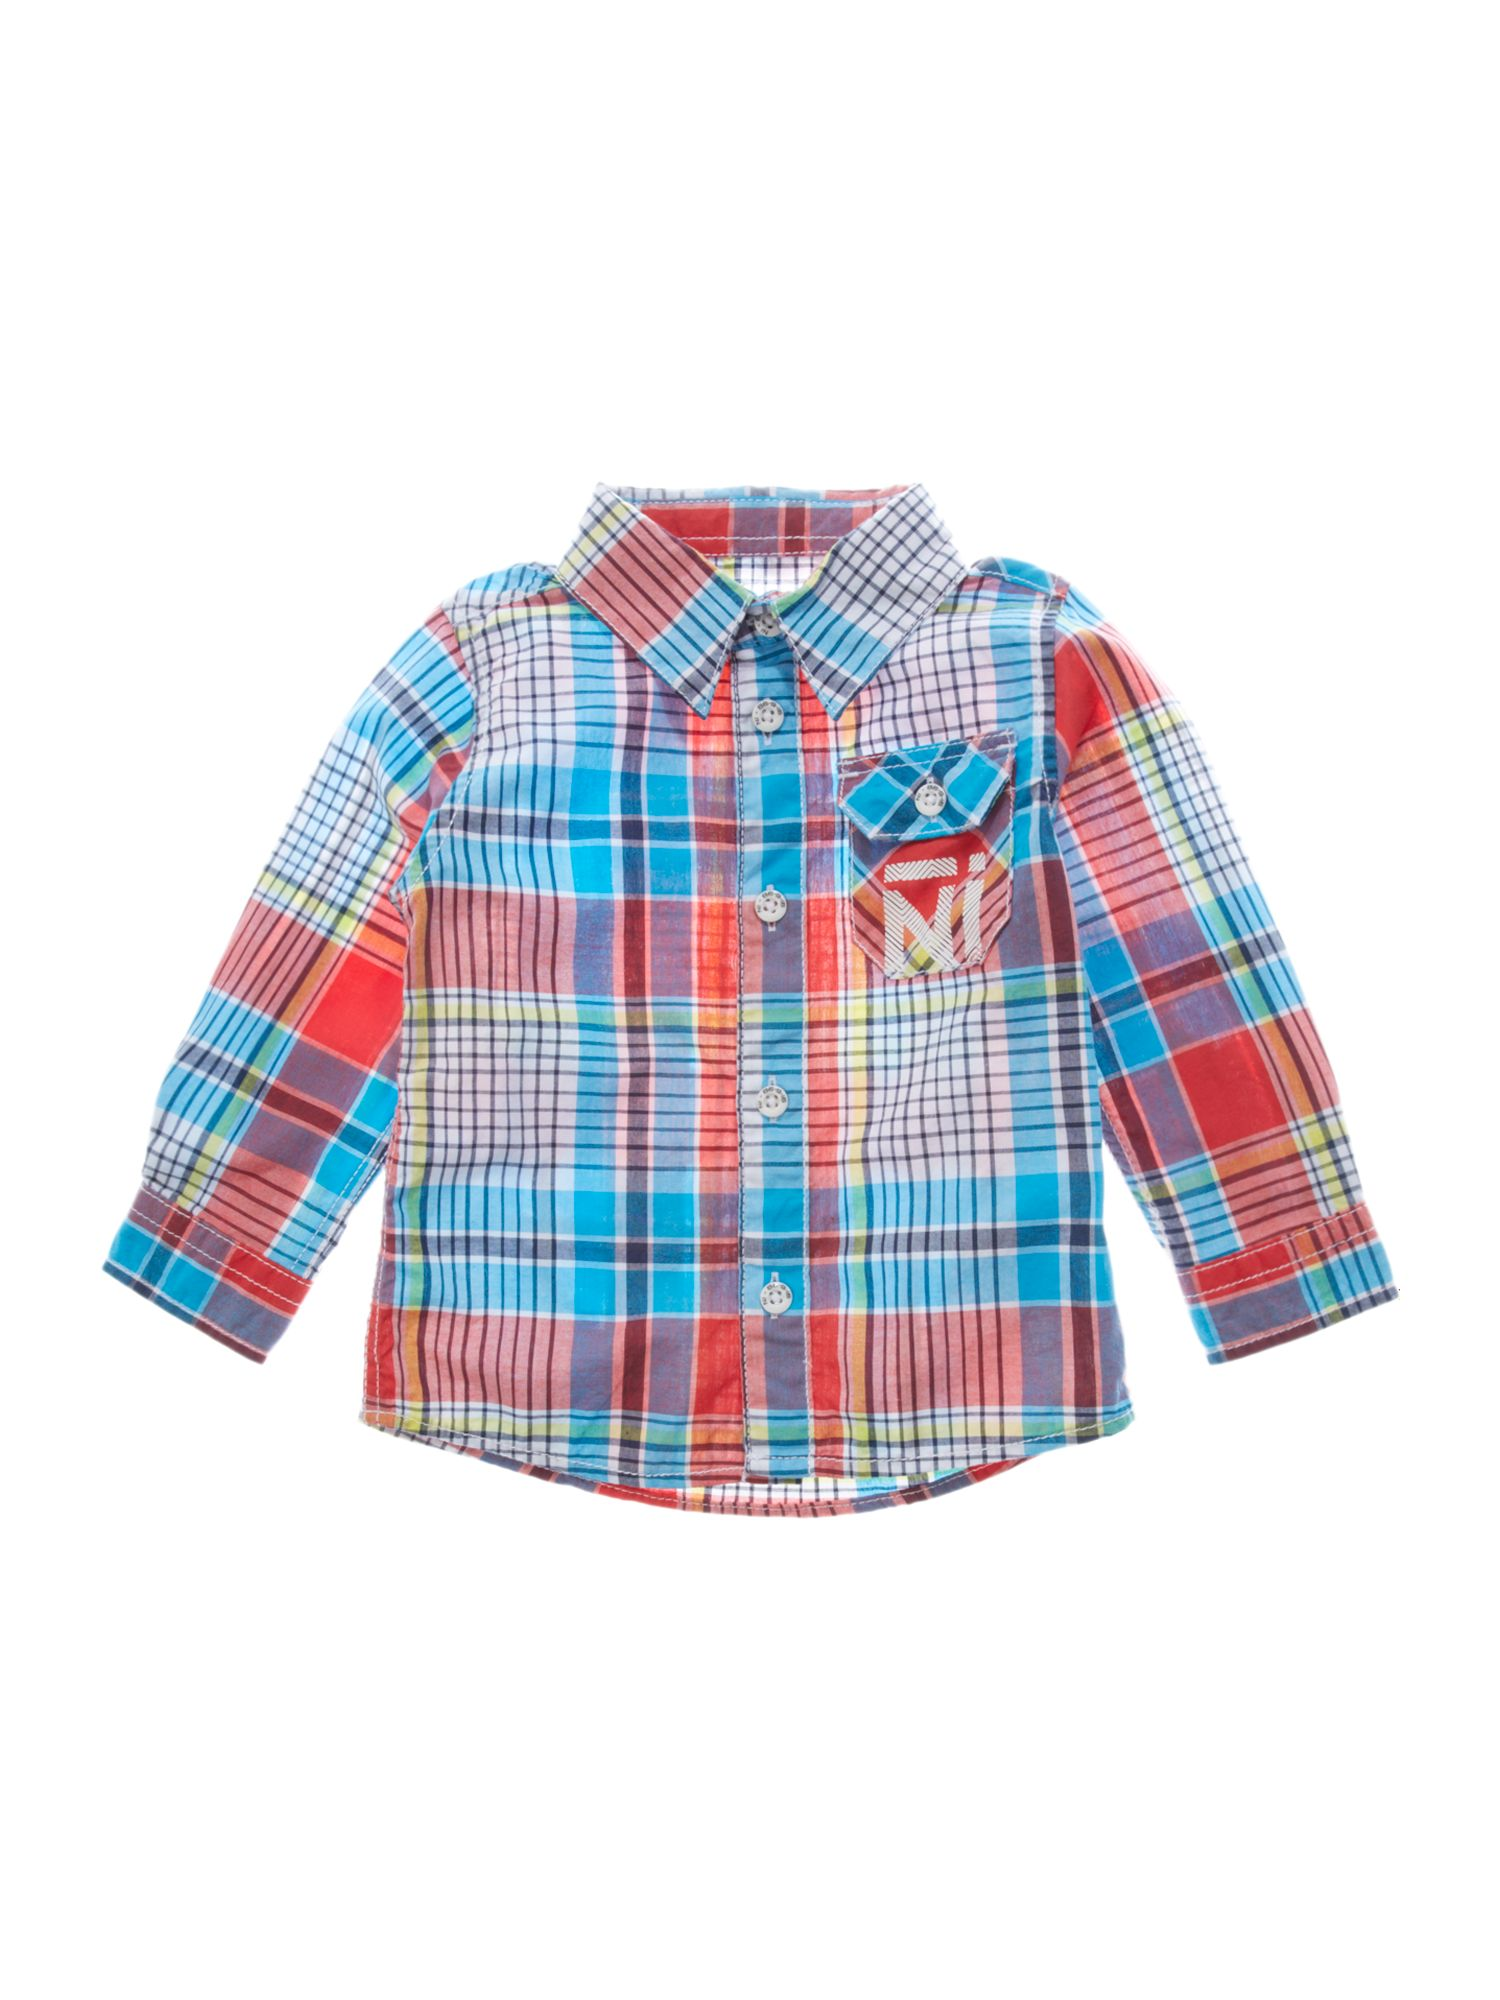 Boys mini check shirt with pocket